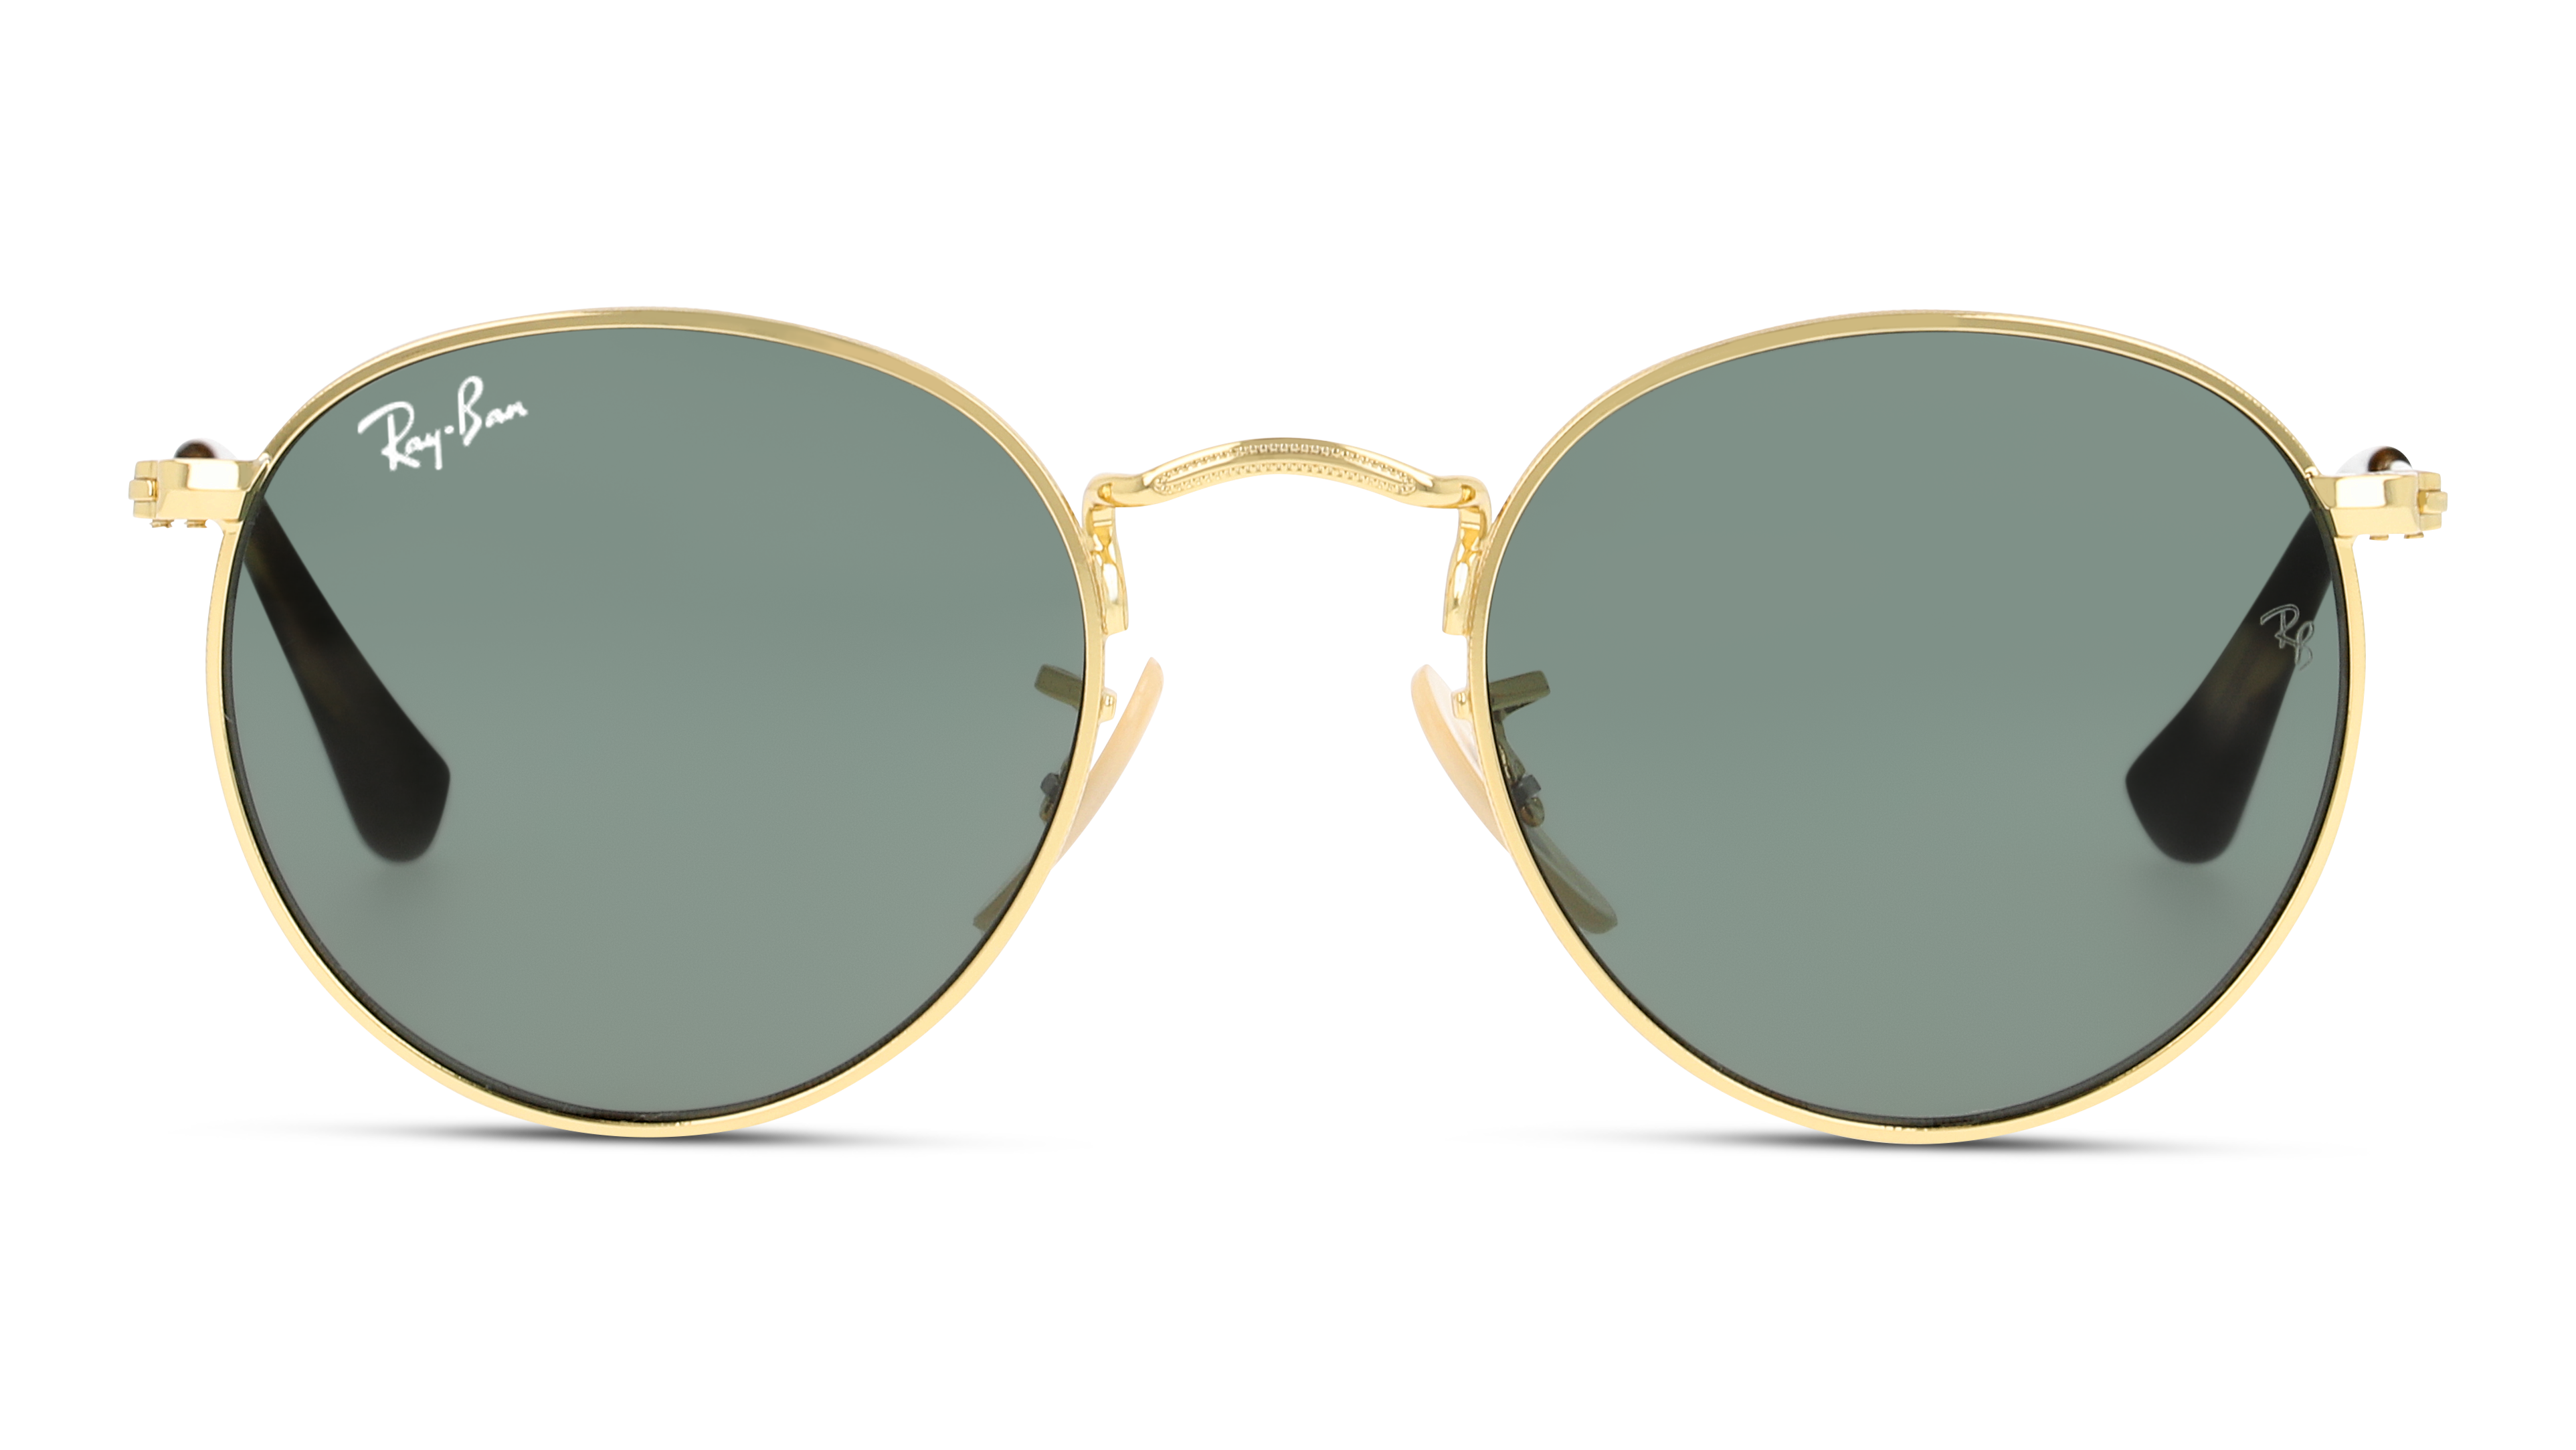 Front Ray-Ban Ray-Ban 0RJ9547S 223/71 44/19 Goud/Groen